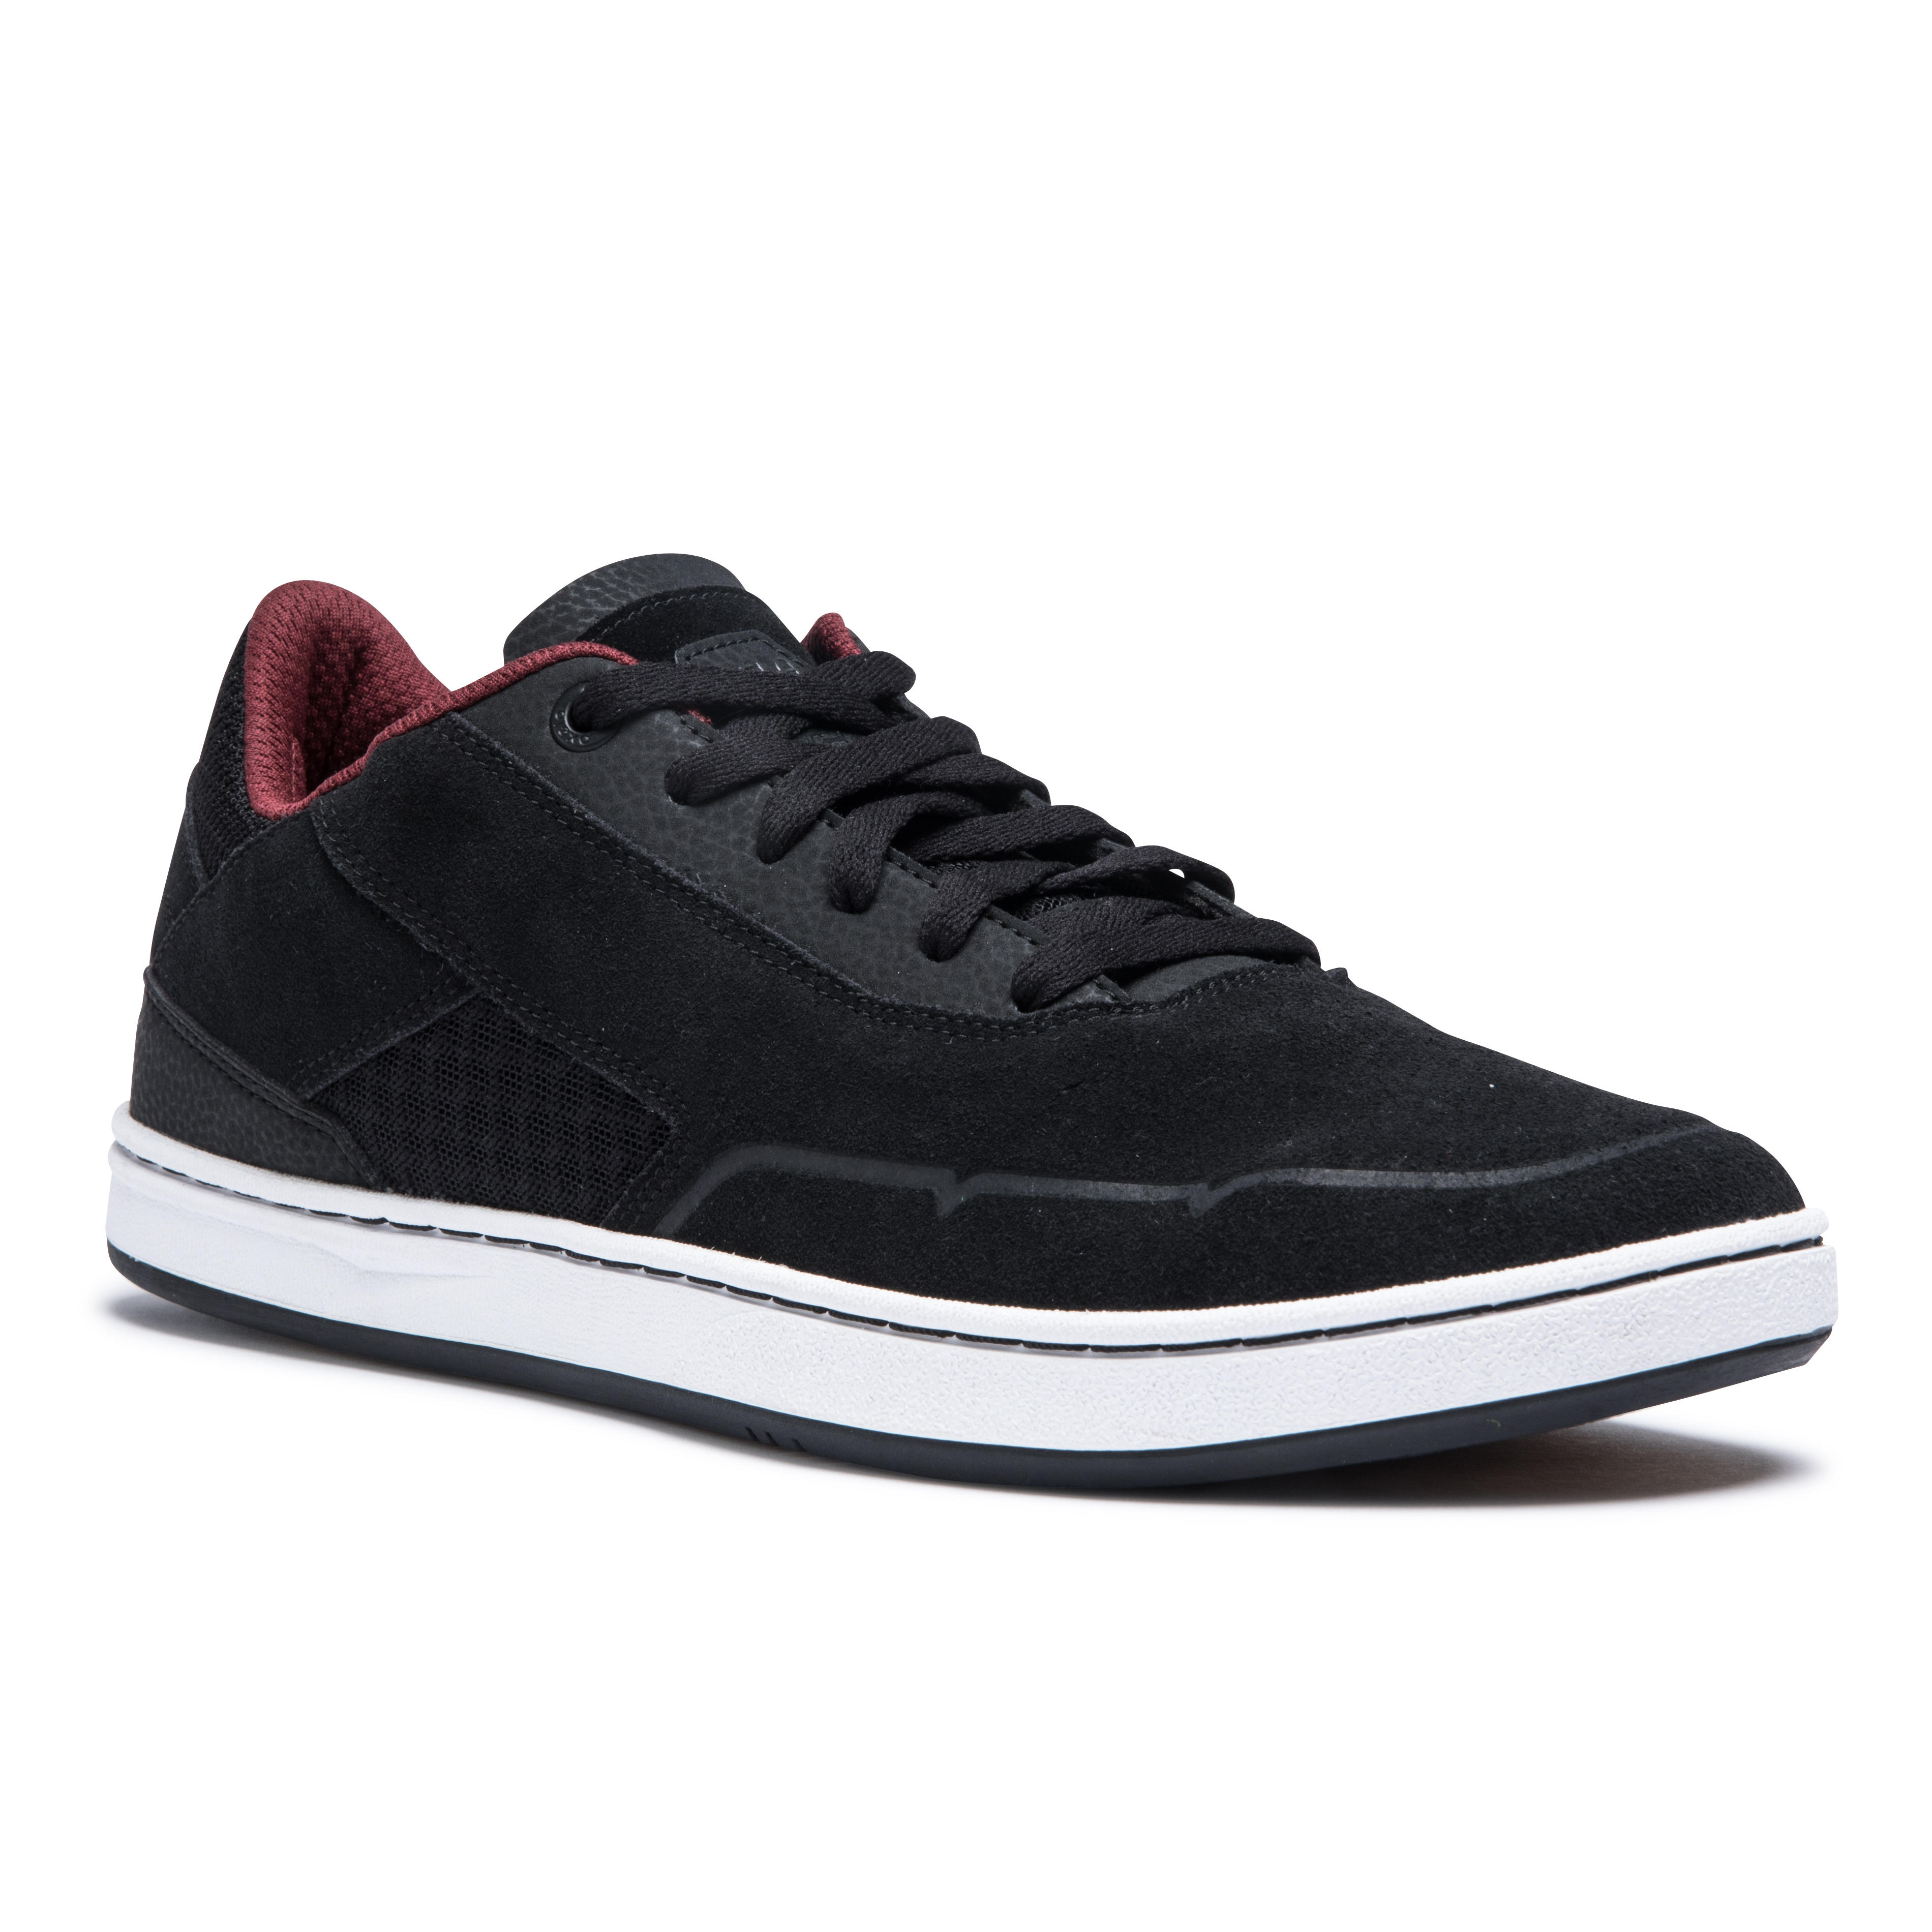 Zapatillas de caña baja de skateboard adulto CRUSH 500 negro/burdeos